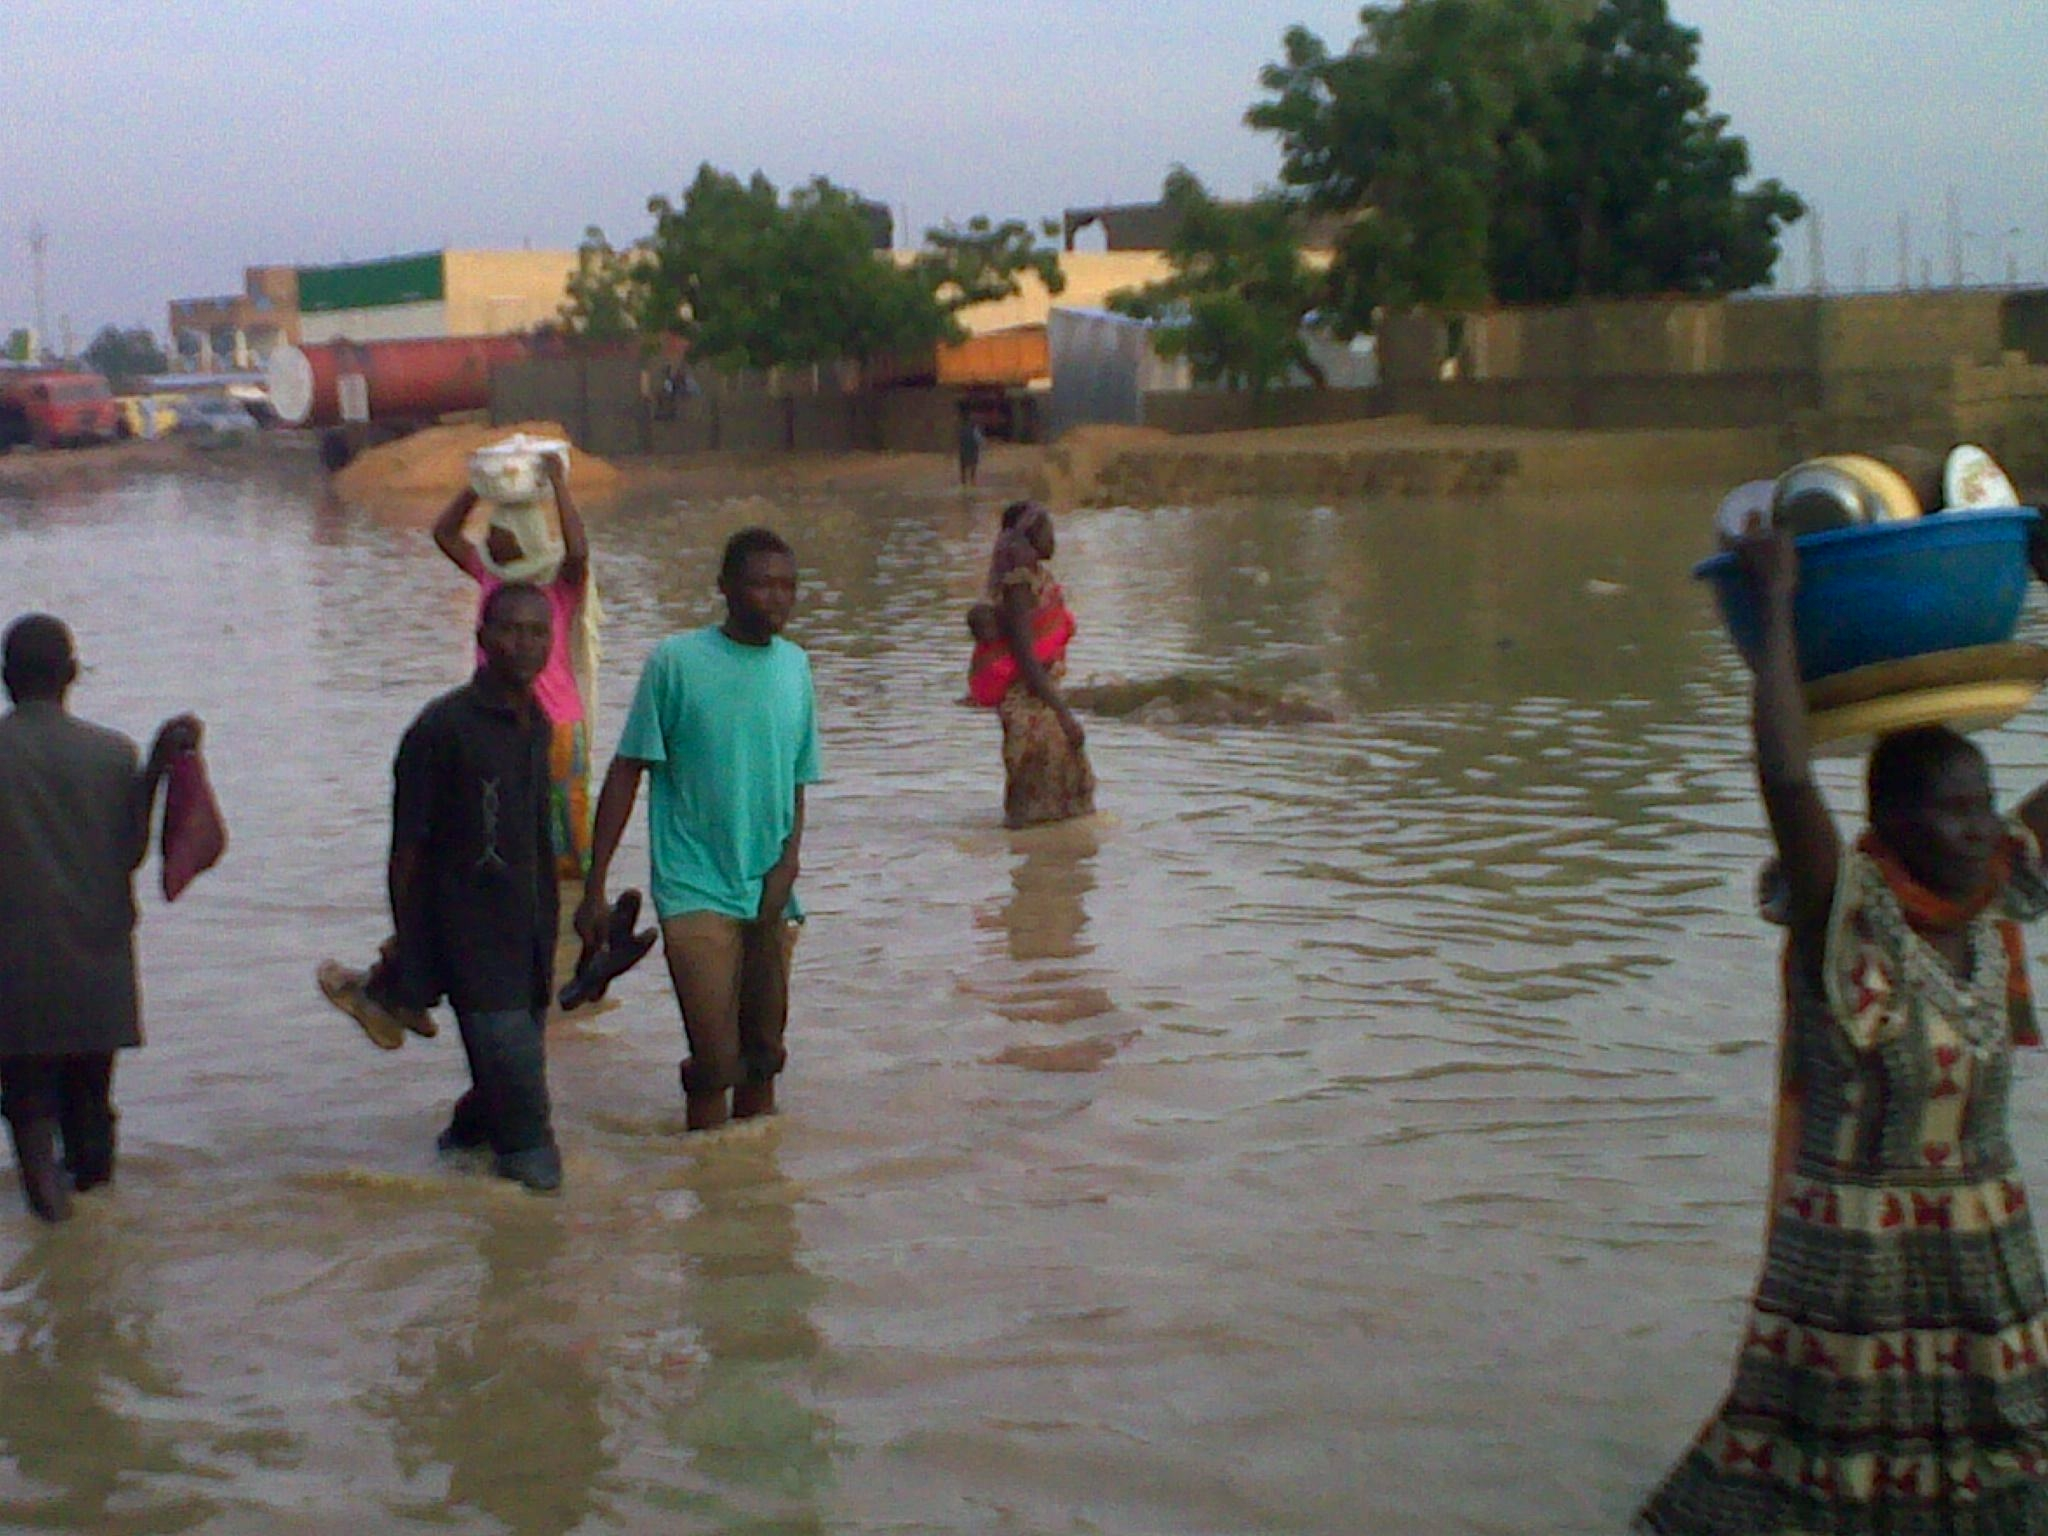 Flooding in the Chad capital N'djamena. August 2009